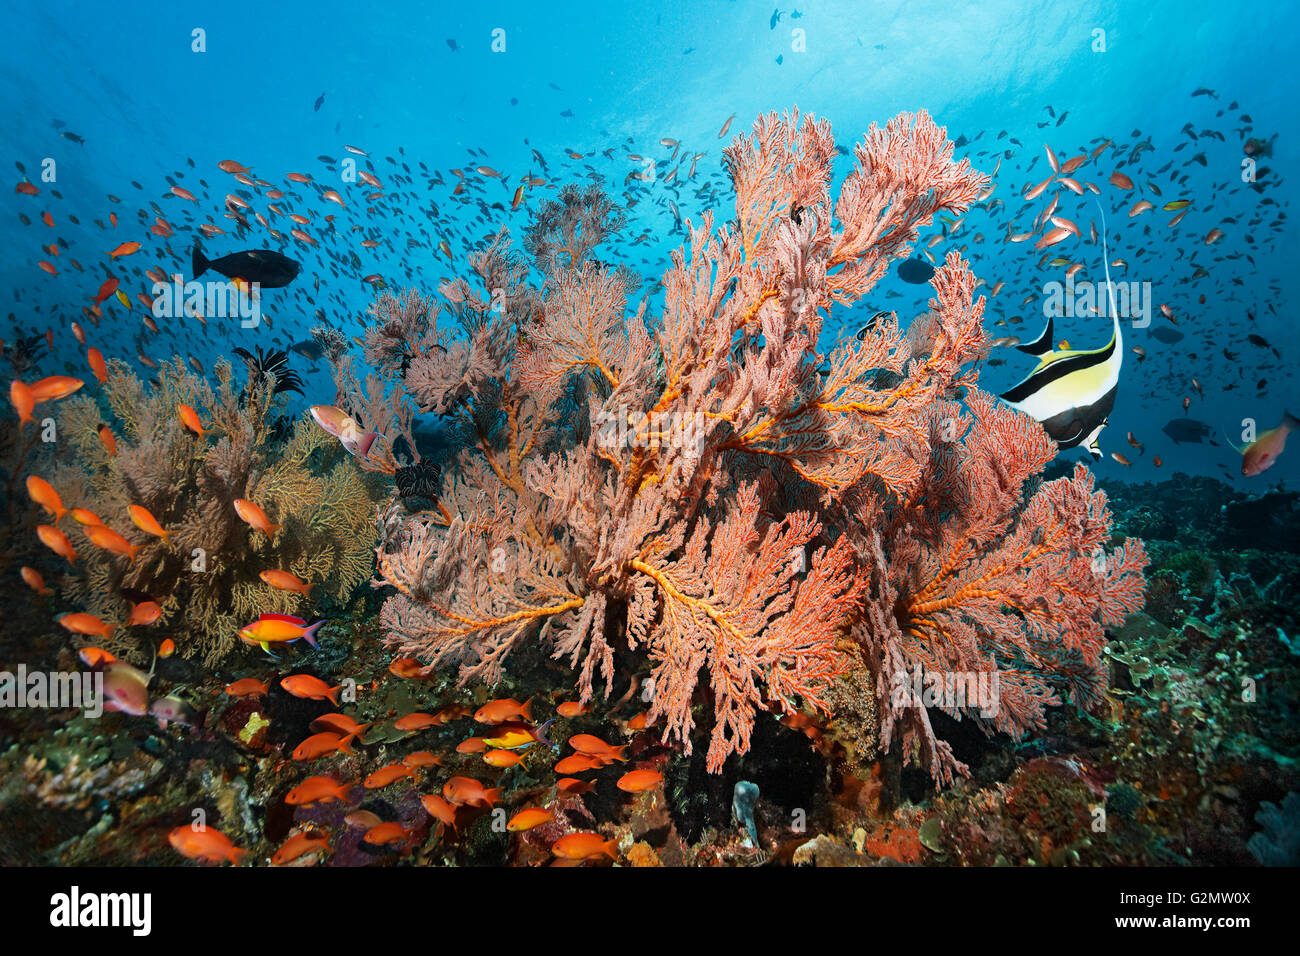 Swarm of various Anthias (Anthiinae) swimming above coral reef, knotted fan coral (Melithaea ochracea) - Stock Image